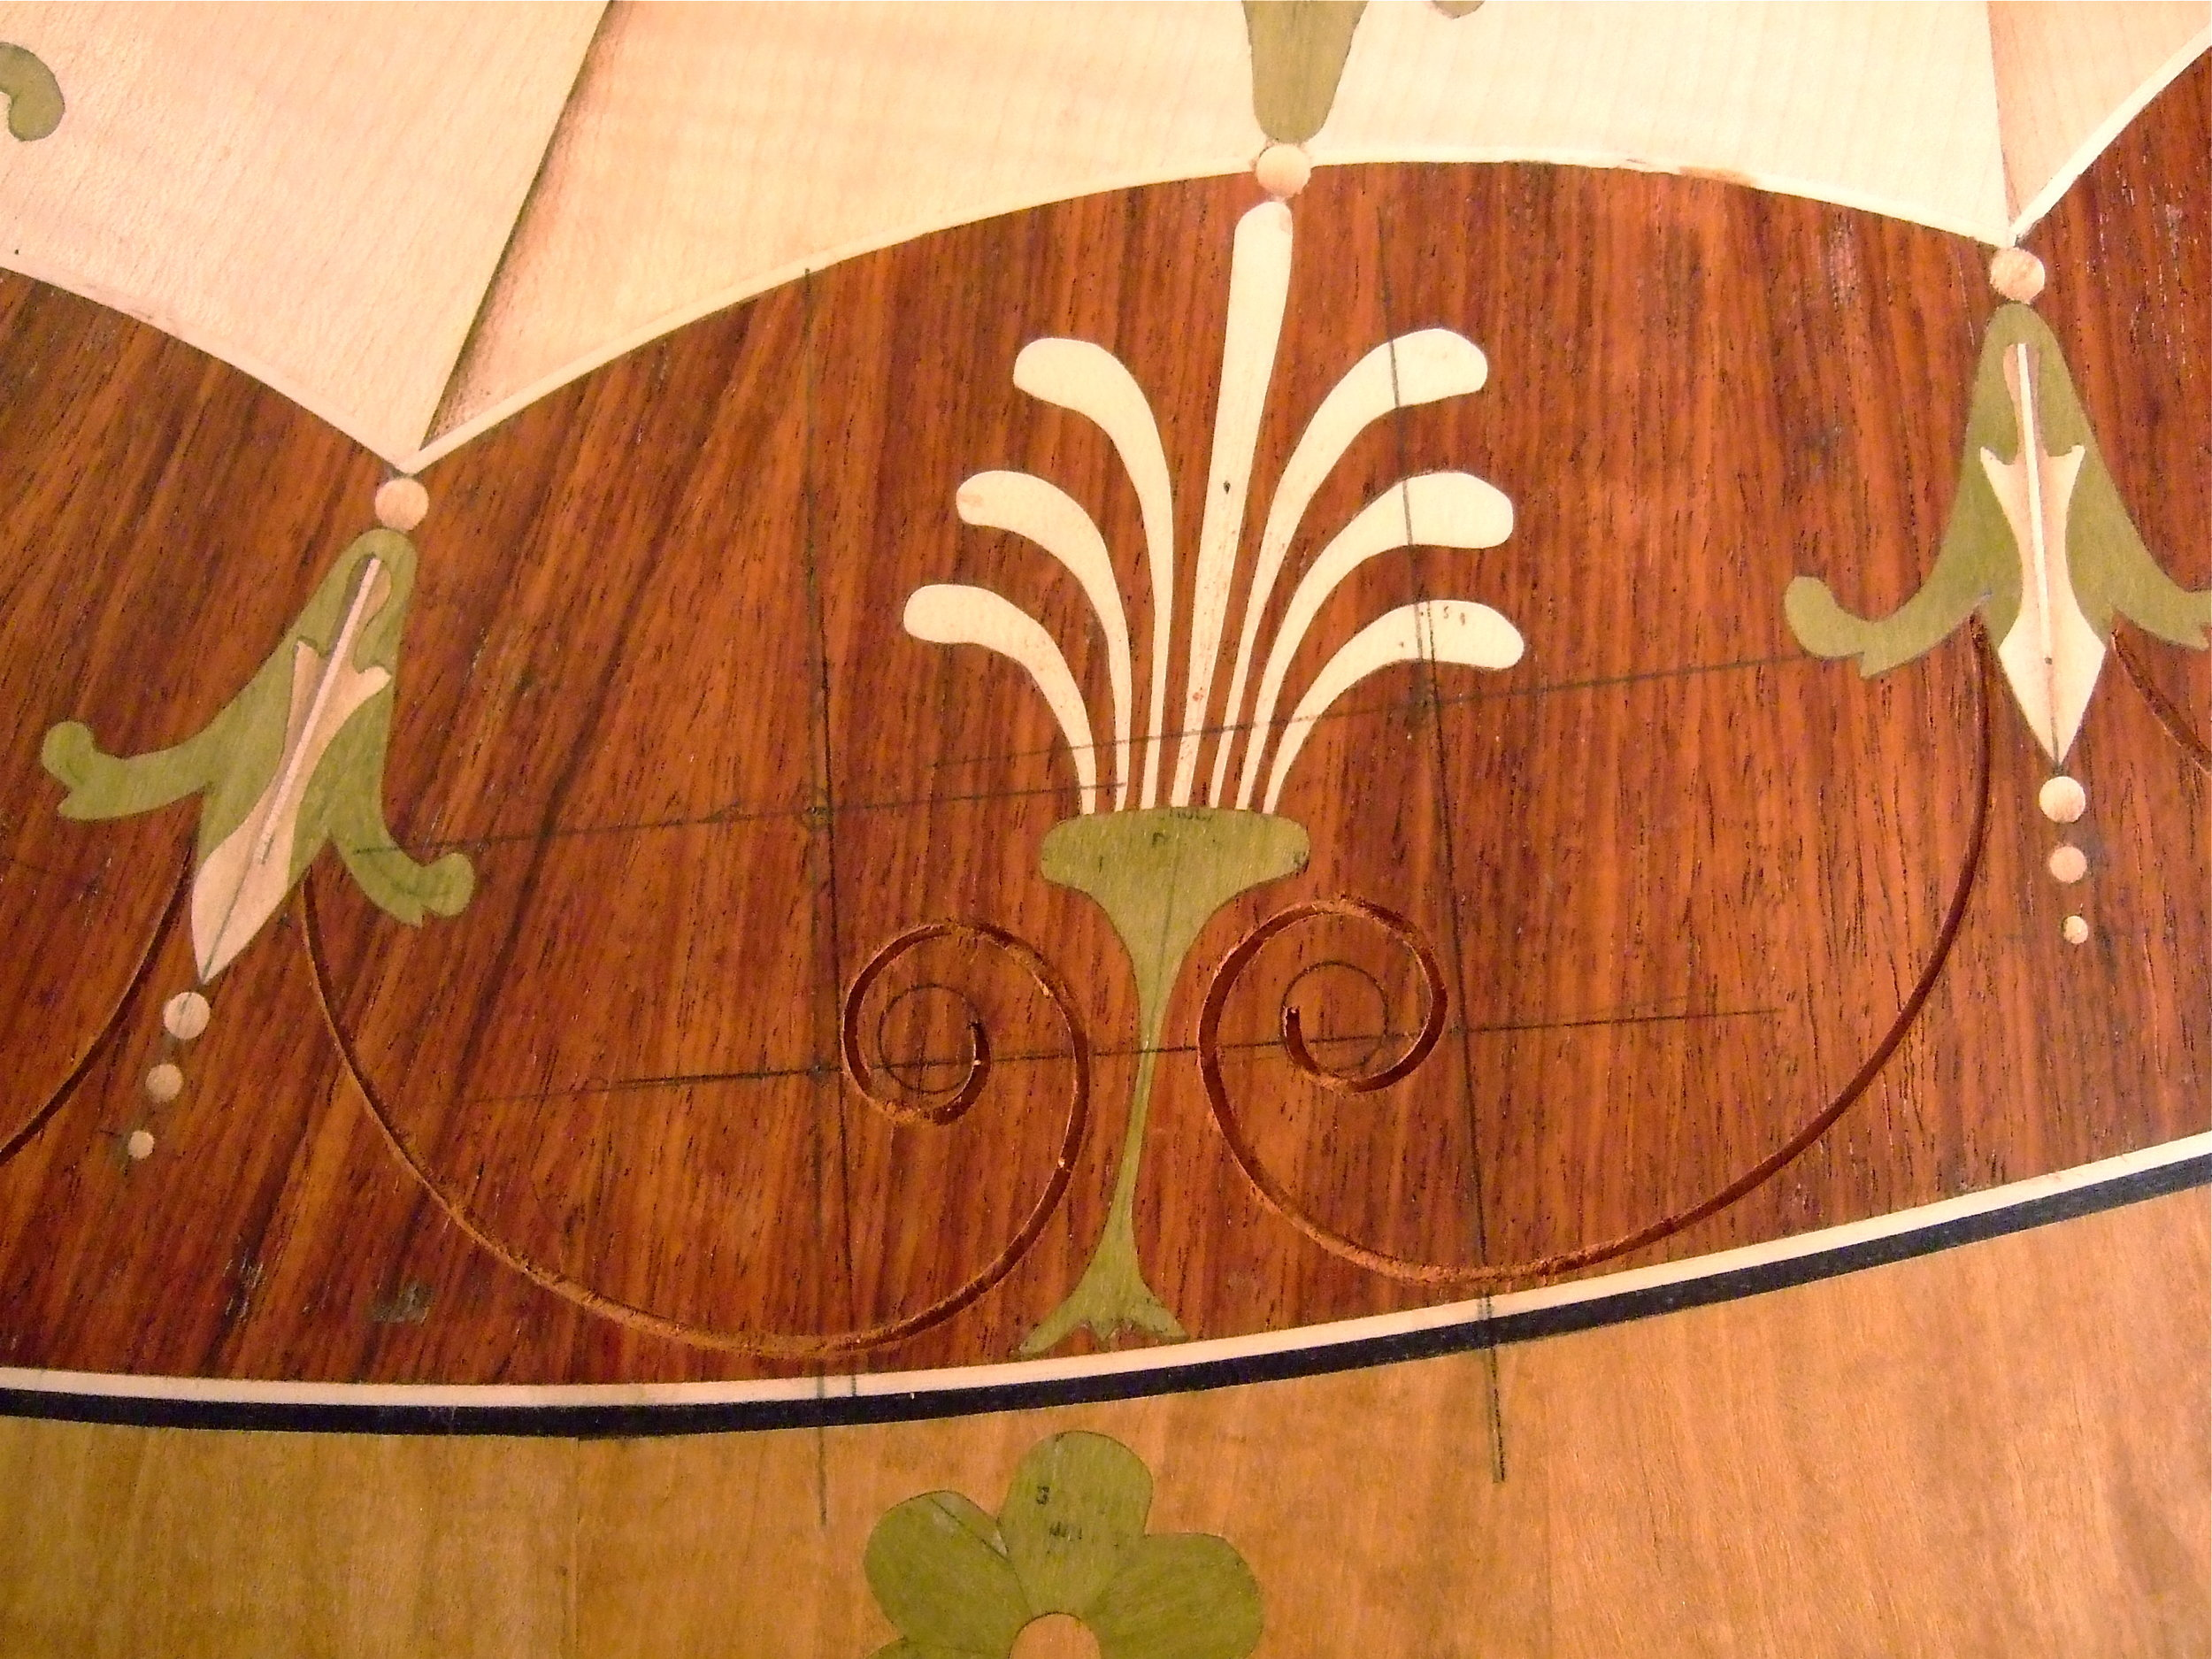 Cutting the negative spaces for inlaying the volutes.